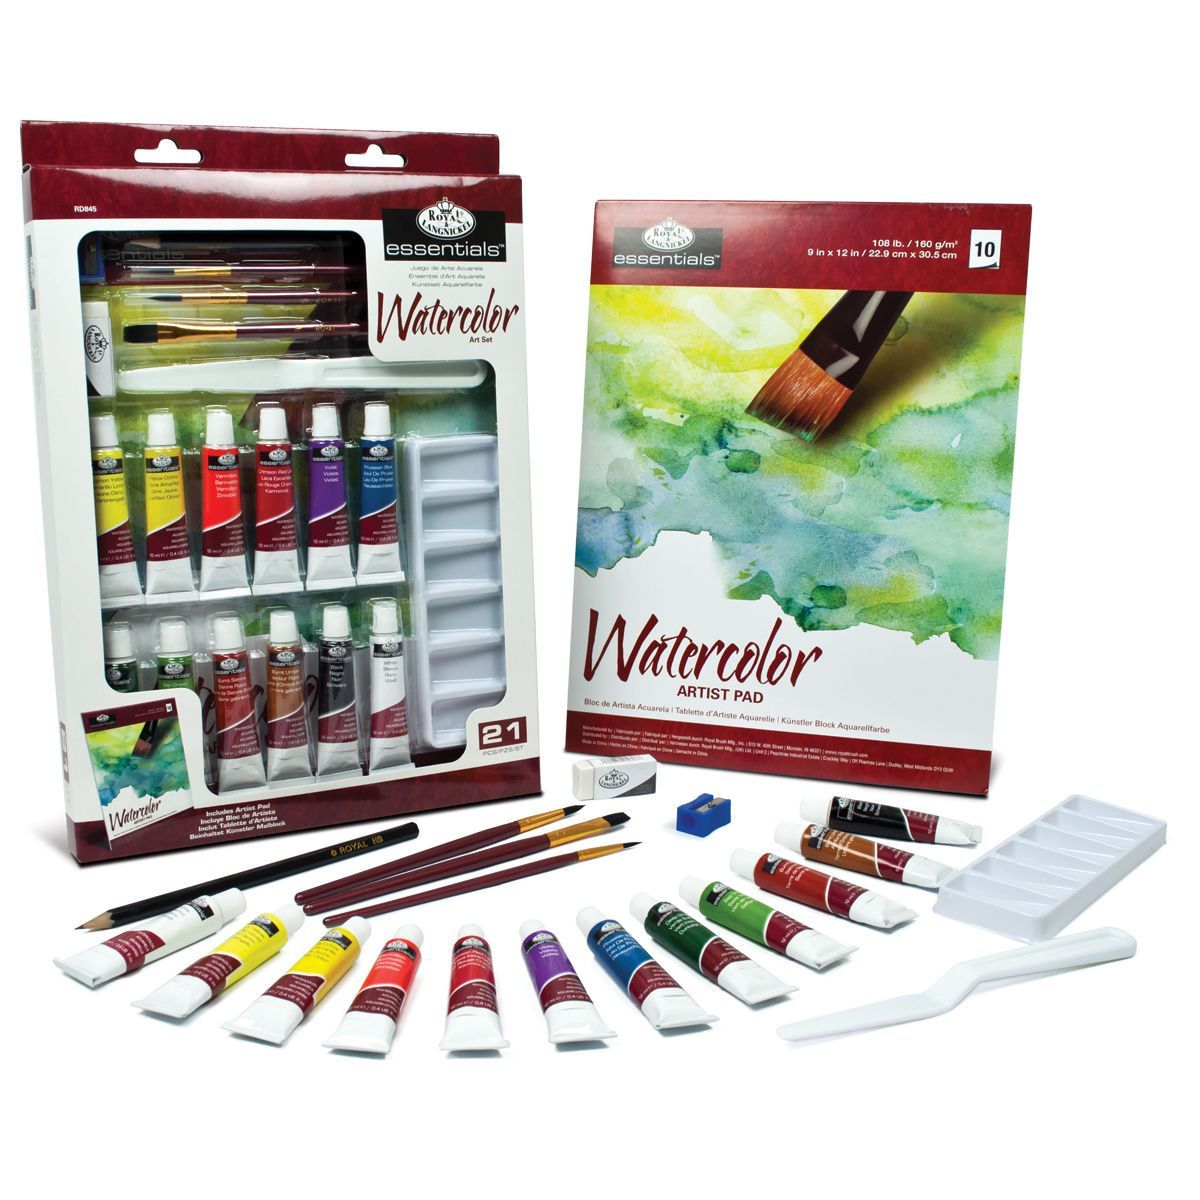 Royal Langnickel Essentials Art Set Watercolor Painting Art